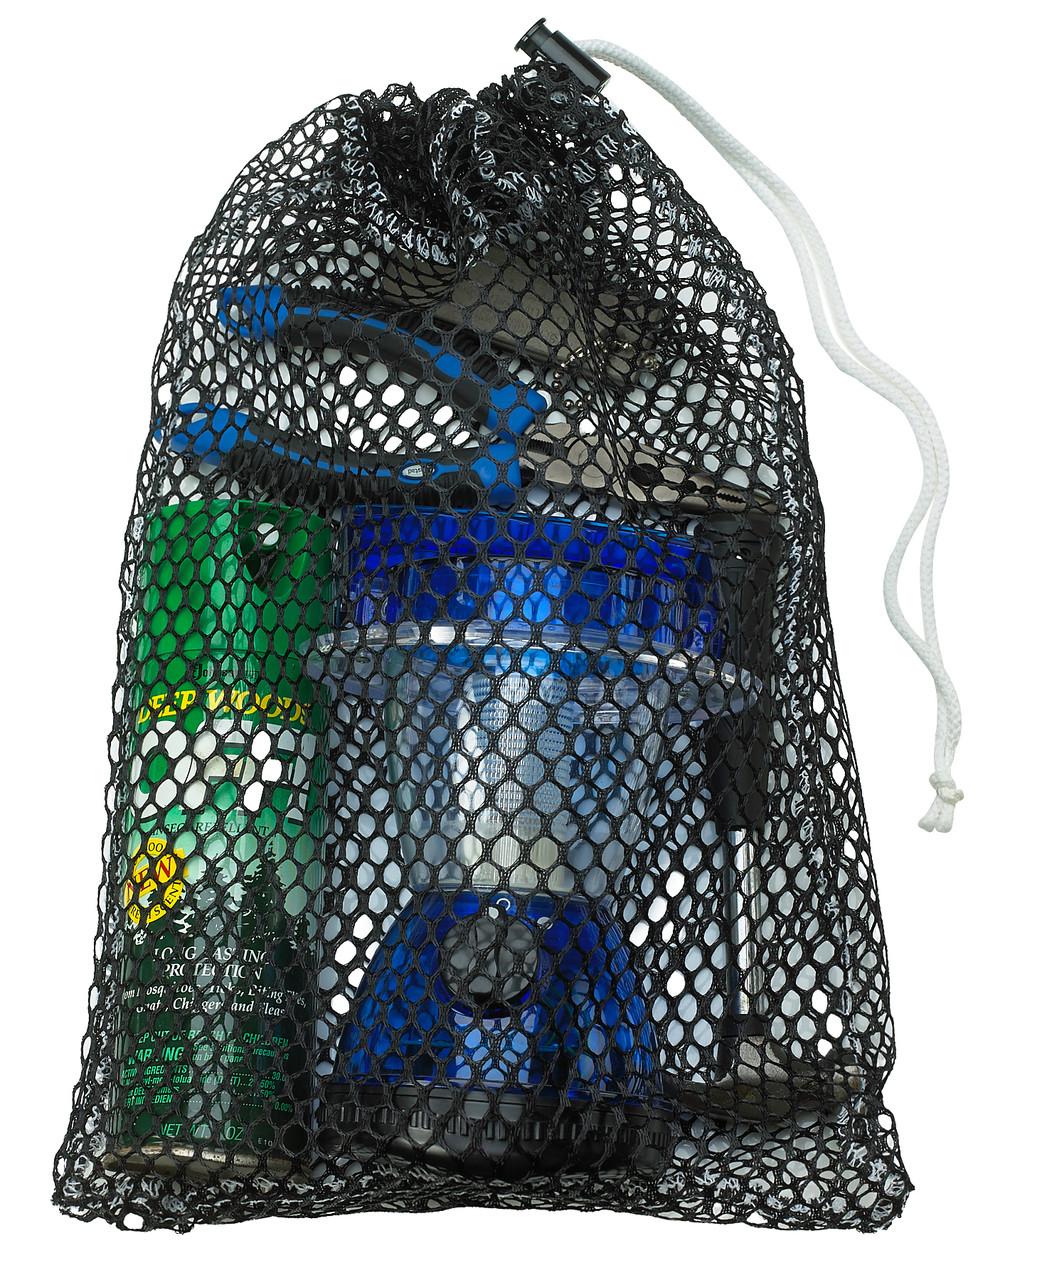 68c3bd4f29d9 Mesh Stuff Bag - Assorted Colors and Sizes